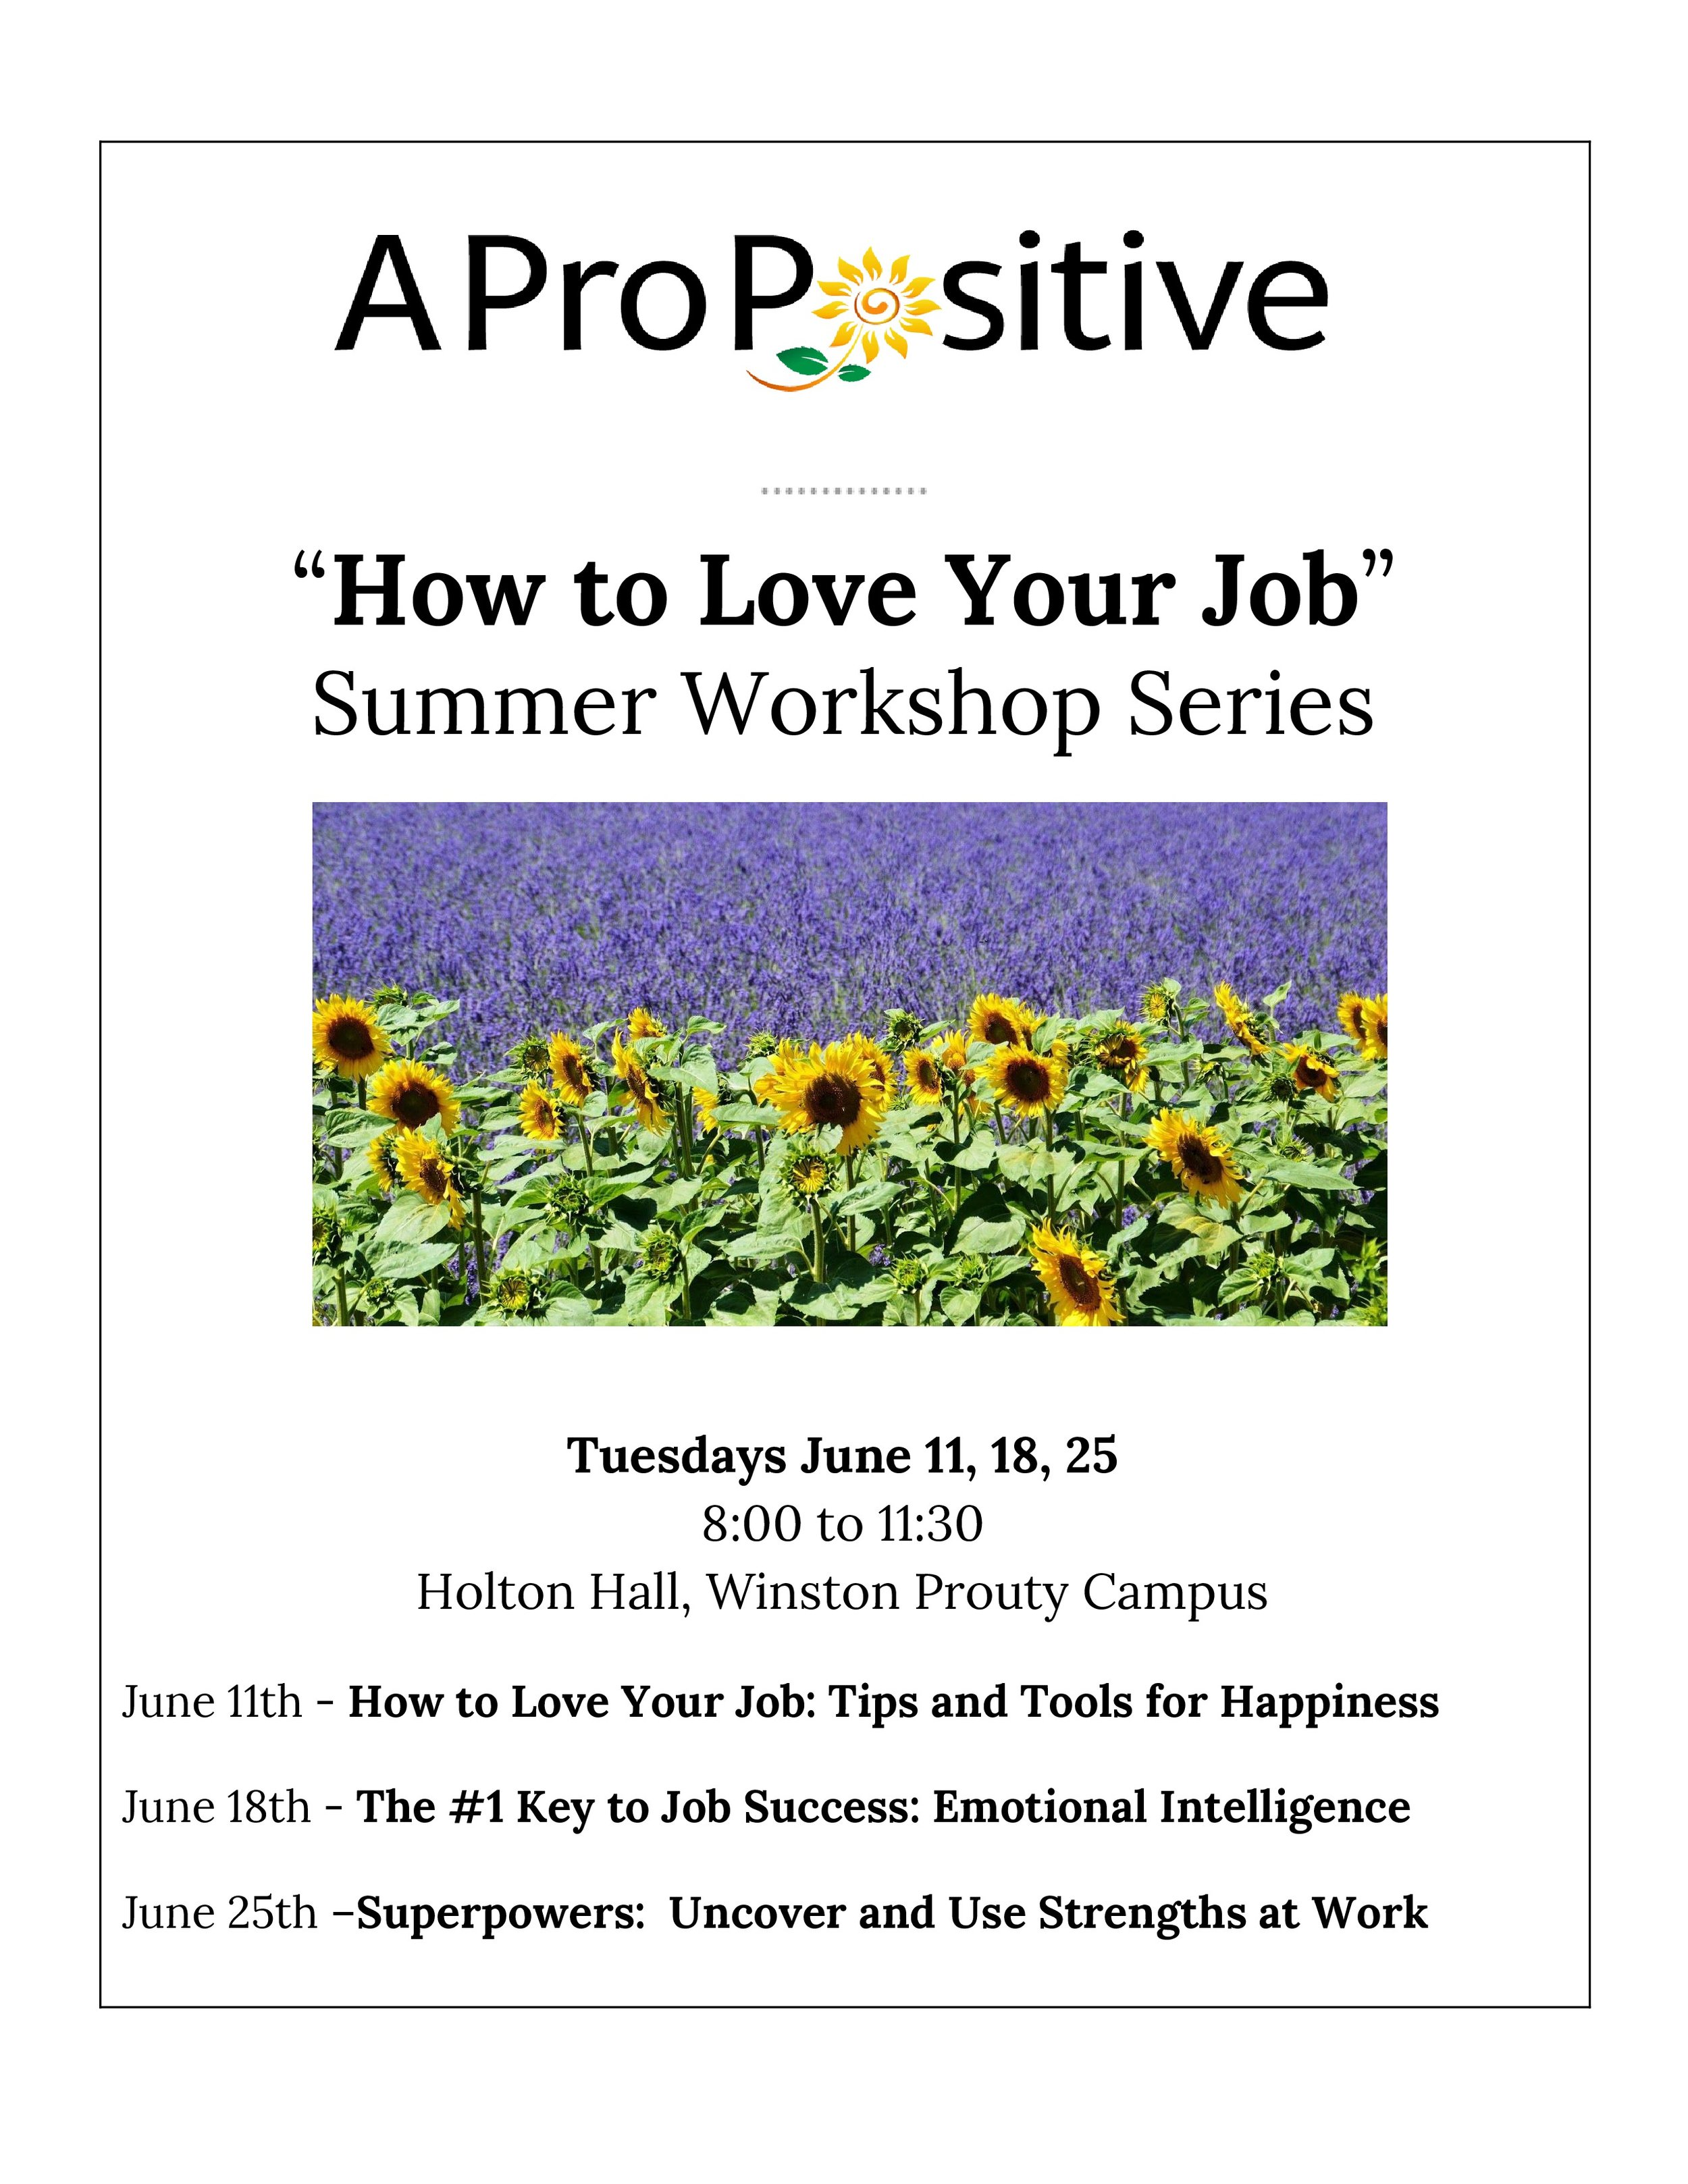 How to Love Your Job Summer Workshop SeriesP1.jpg